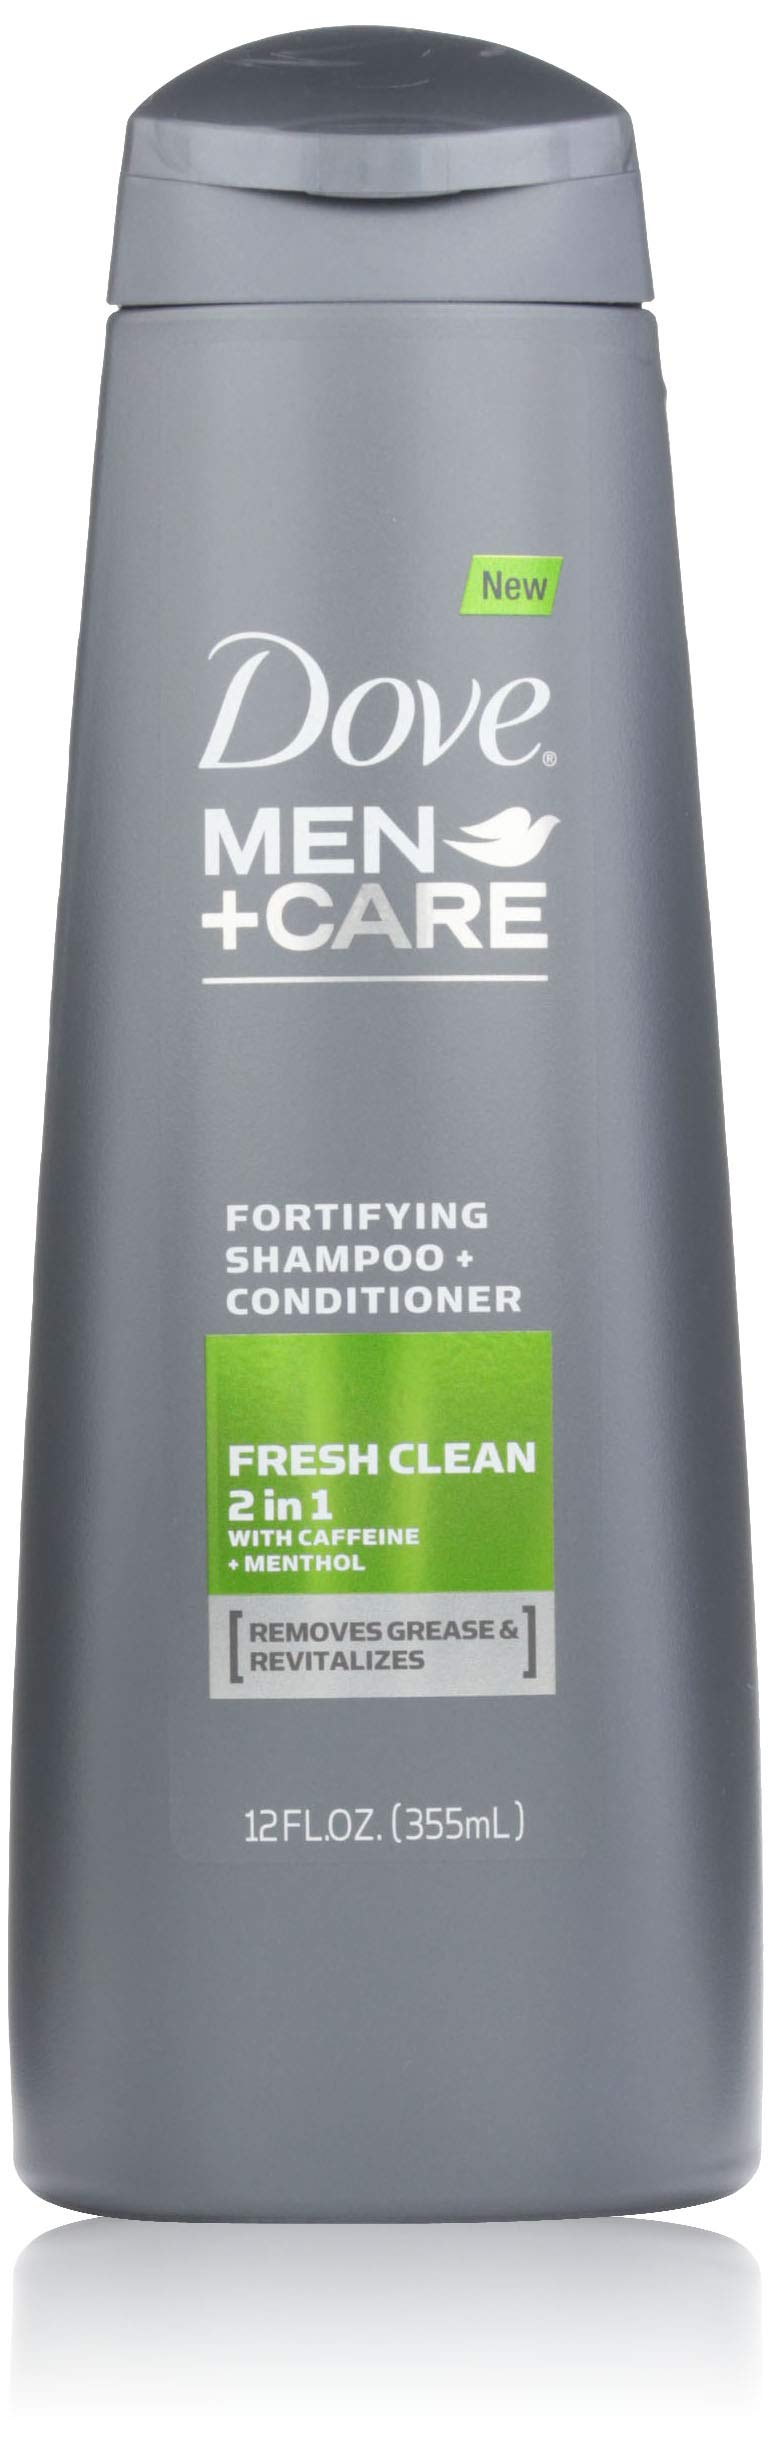 Dove Men+Care 2 in 1 Shampoo and Conditioner, Fresh and Clean 12 Ounce